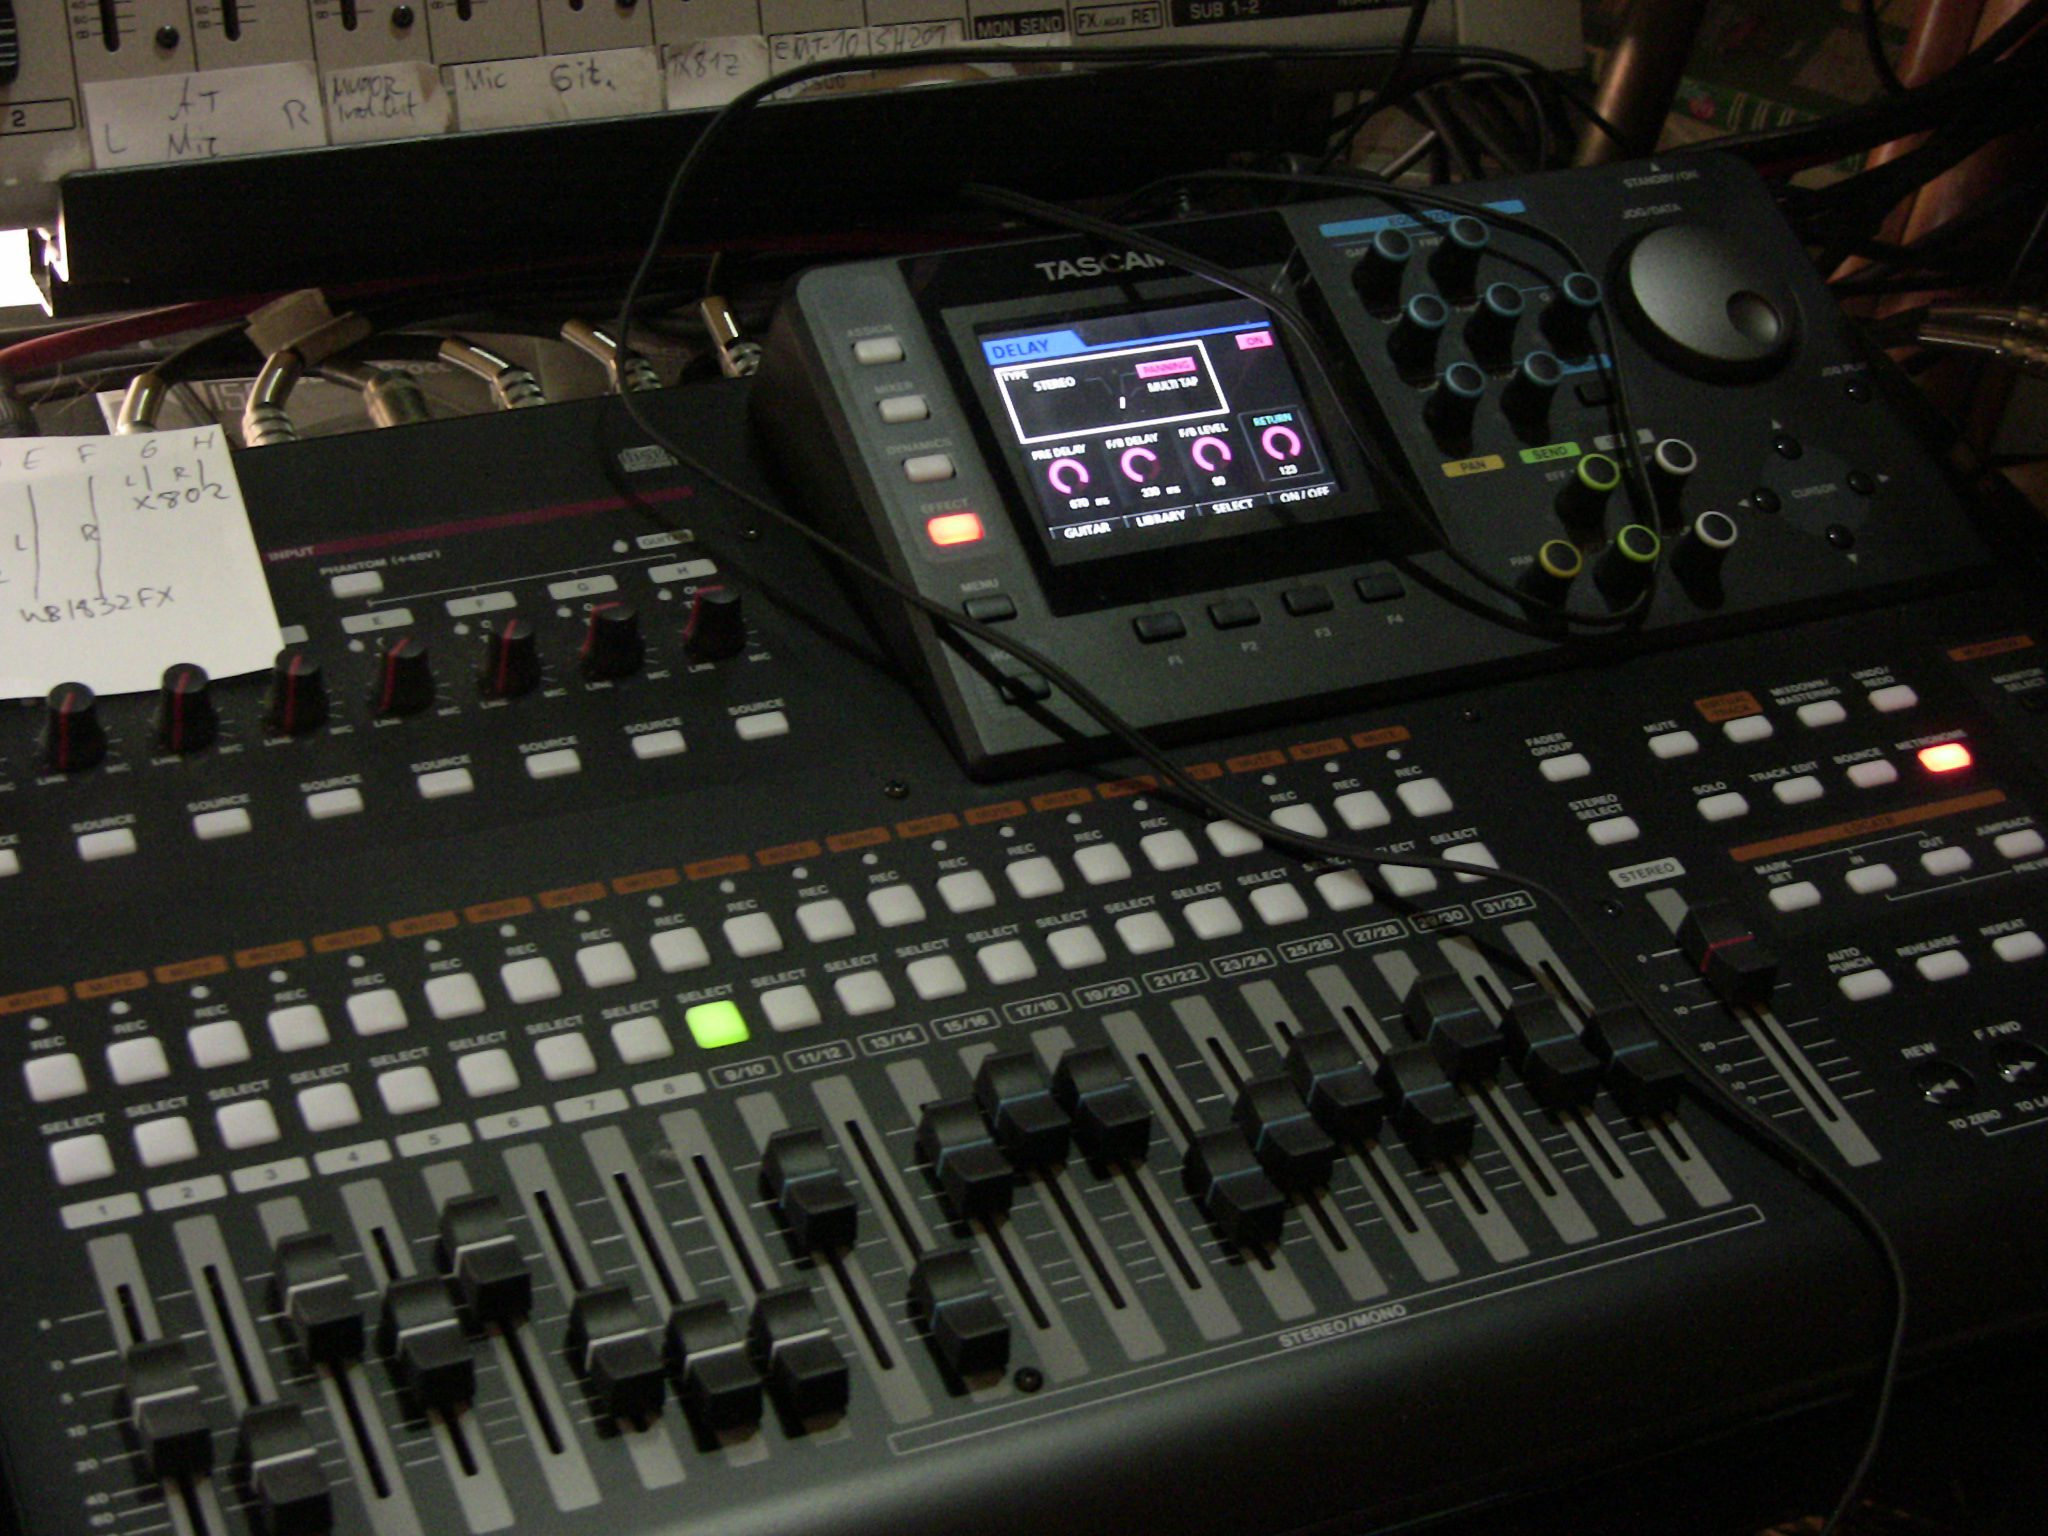 Tascam DP-32 Multitrack Recorder